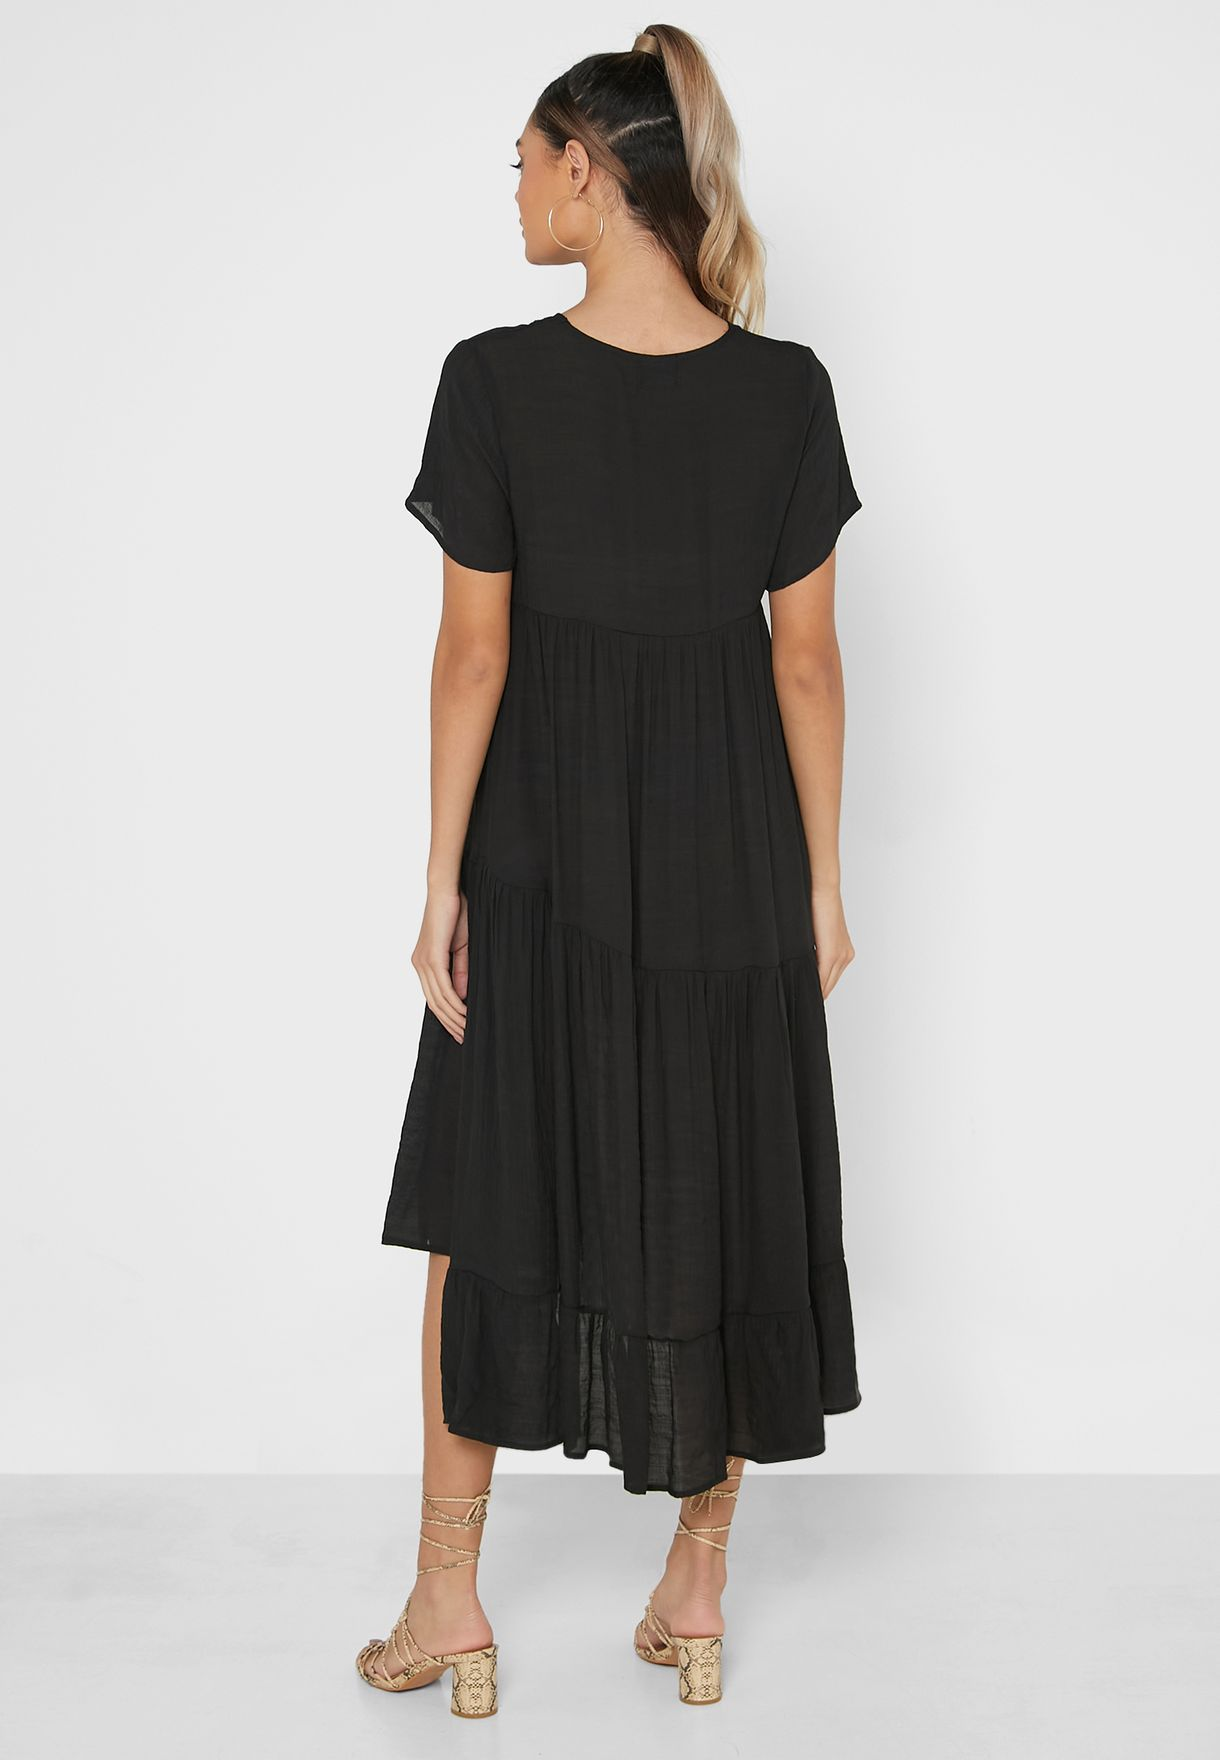 Tiered Comfort Fit Dress